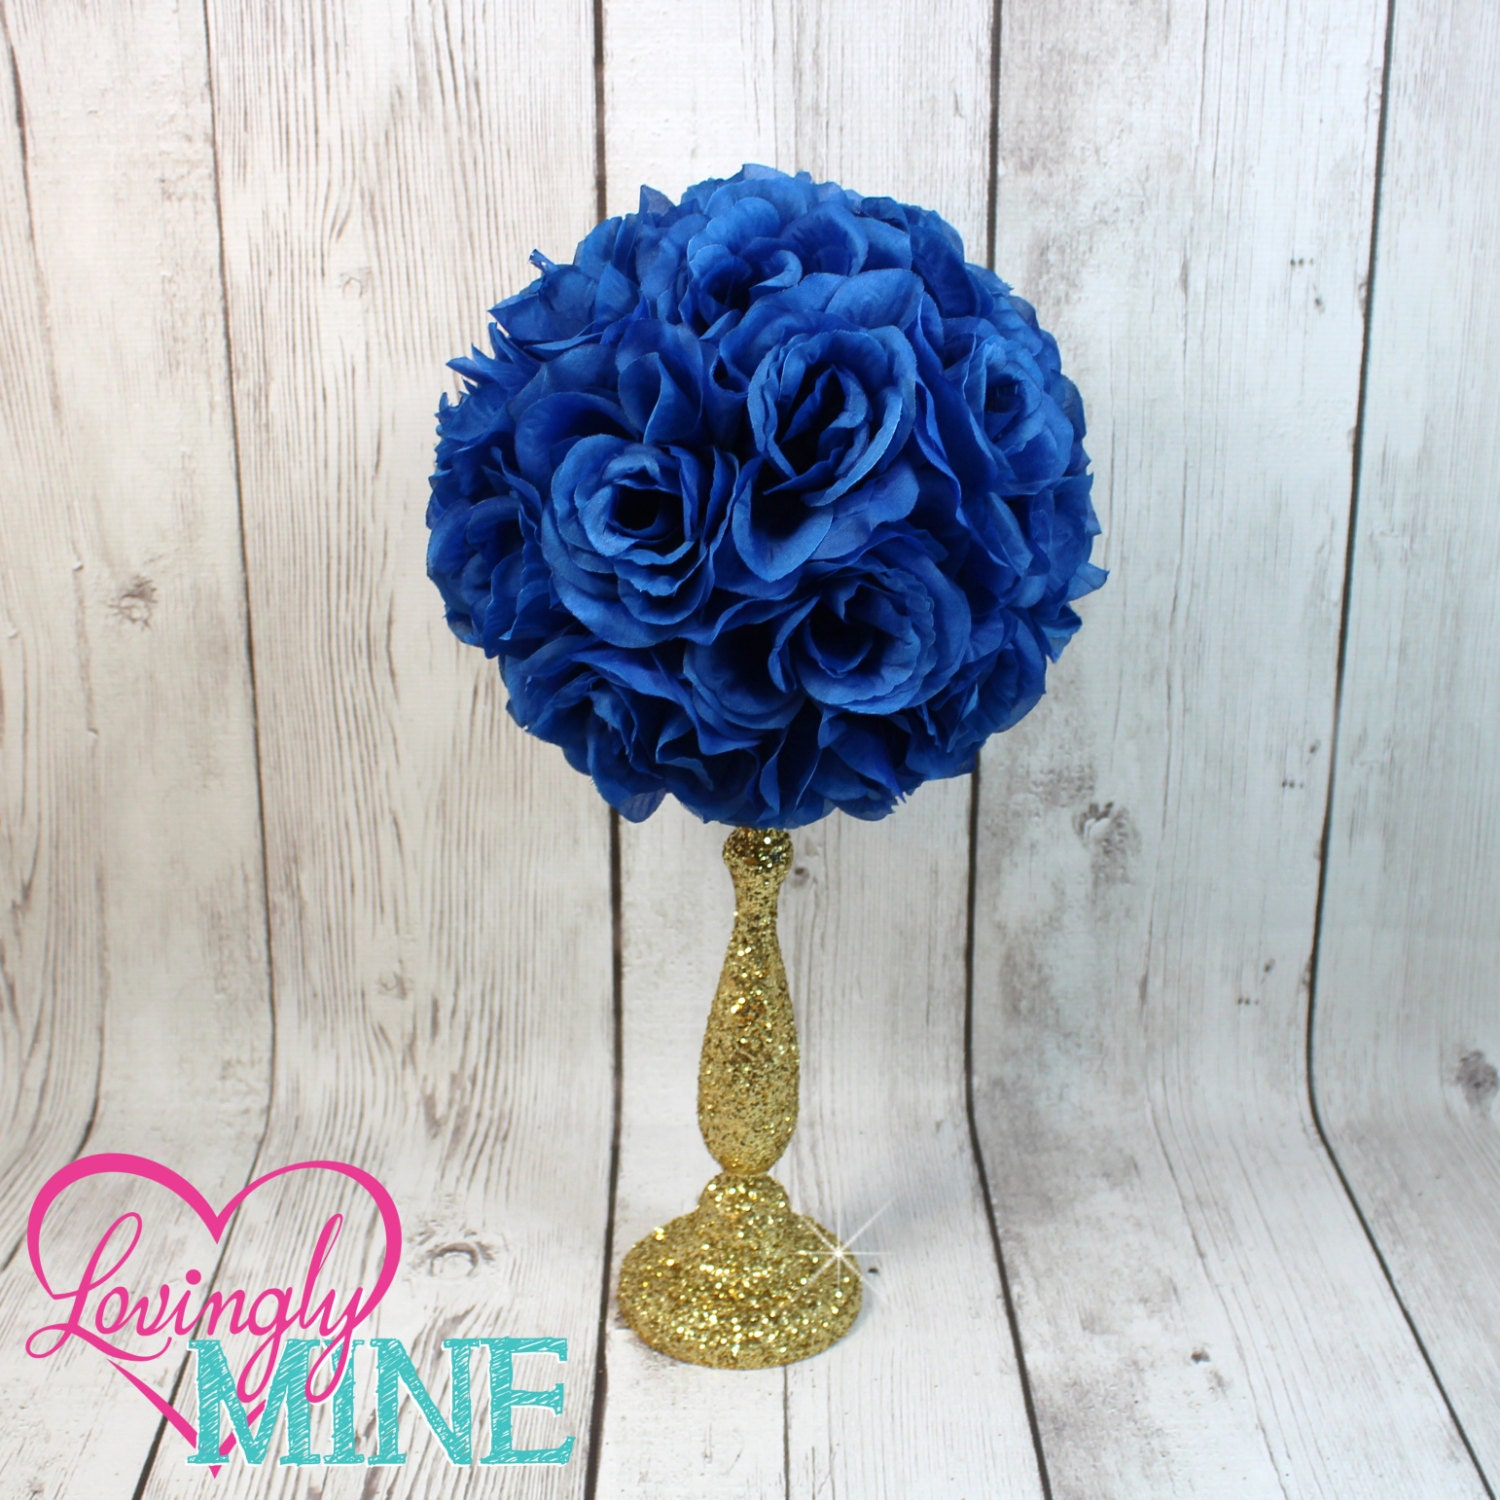 Centerpiece royal blue rose pomander glitter gold vase